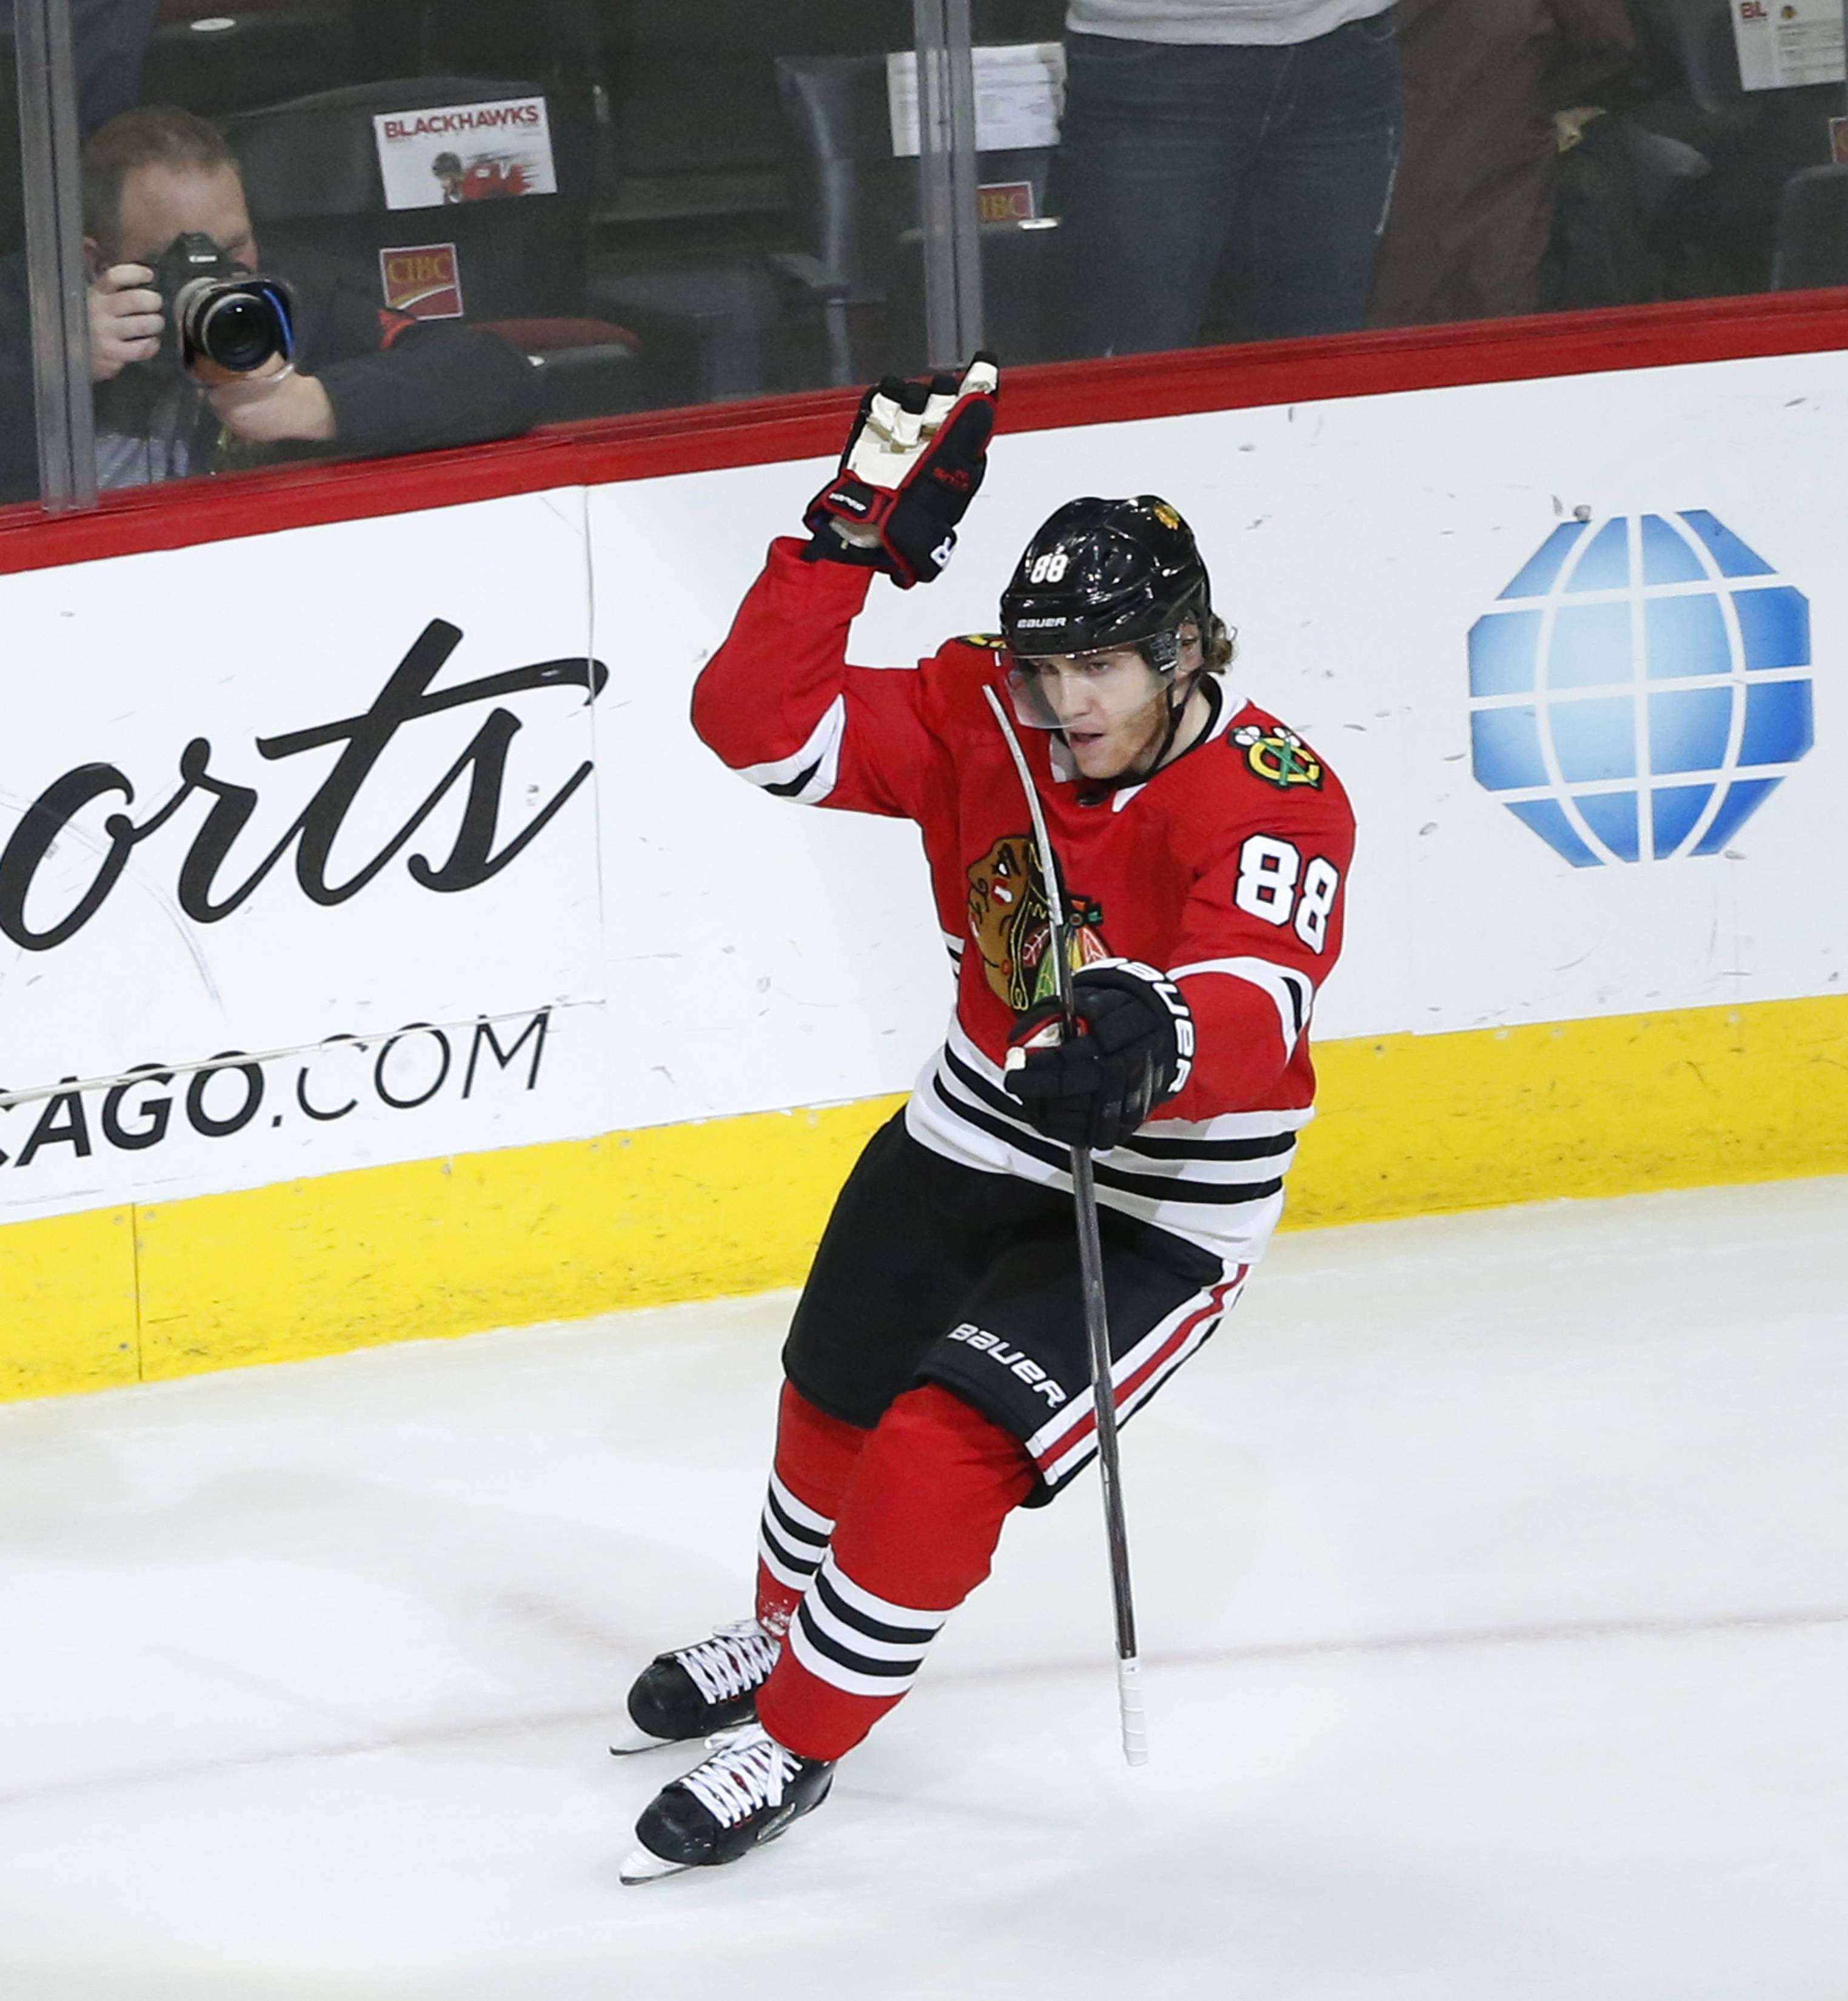 Chicago Blackhawks' Patrick Kane (88) celebrates his game winning goal during overtime of an NHL hockey game against the Florida Panthers, Tuesday, Dec. 12, 2017, in Chicago. The Blackhawks won 3-2. (AP Photo/Charles Rex Arbogast)